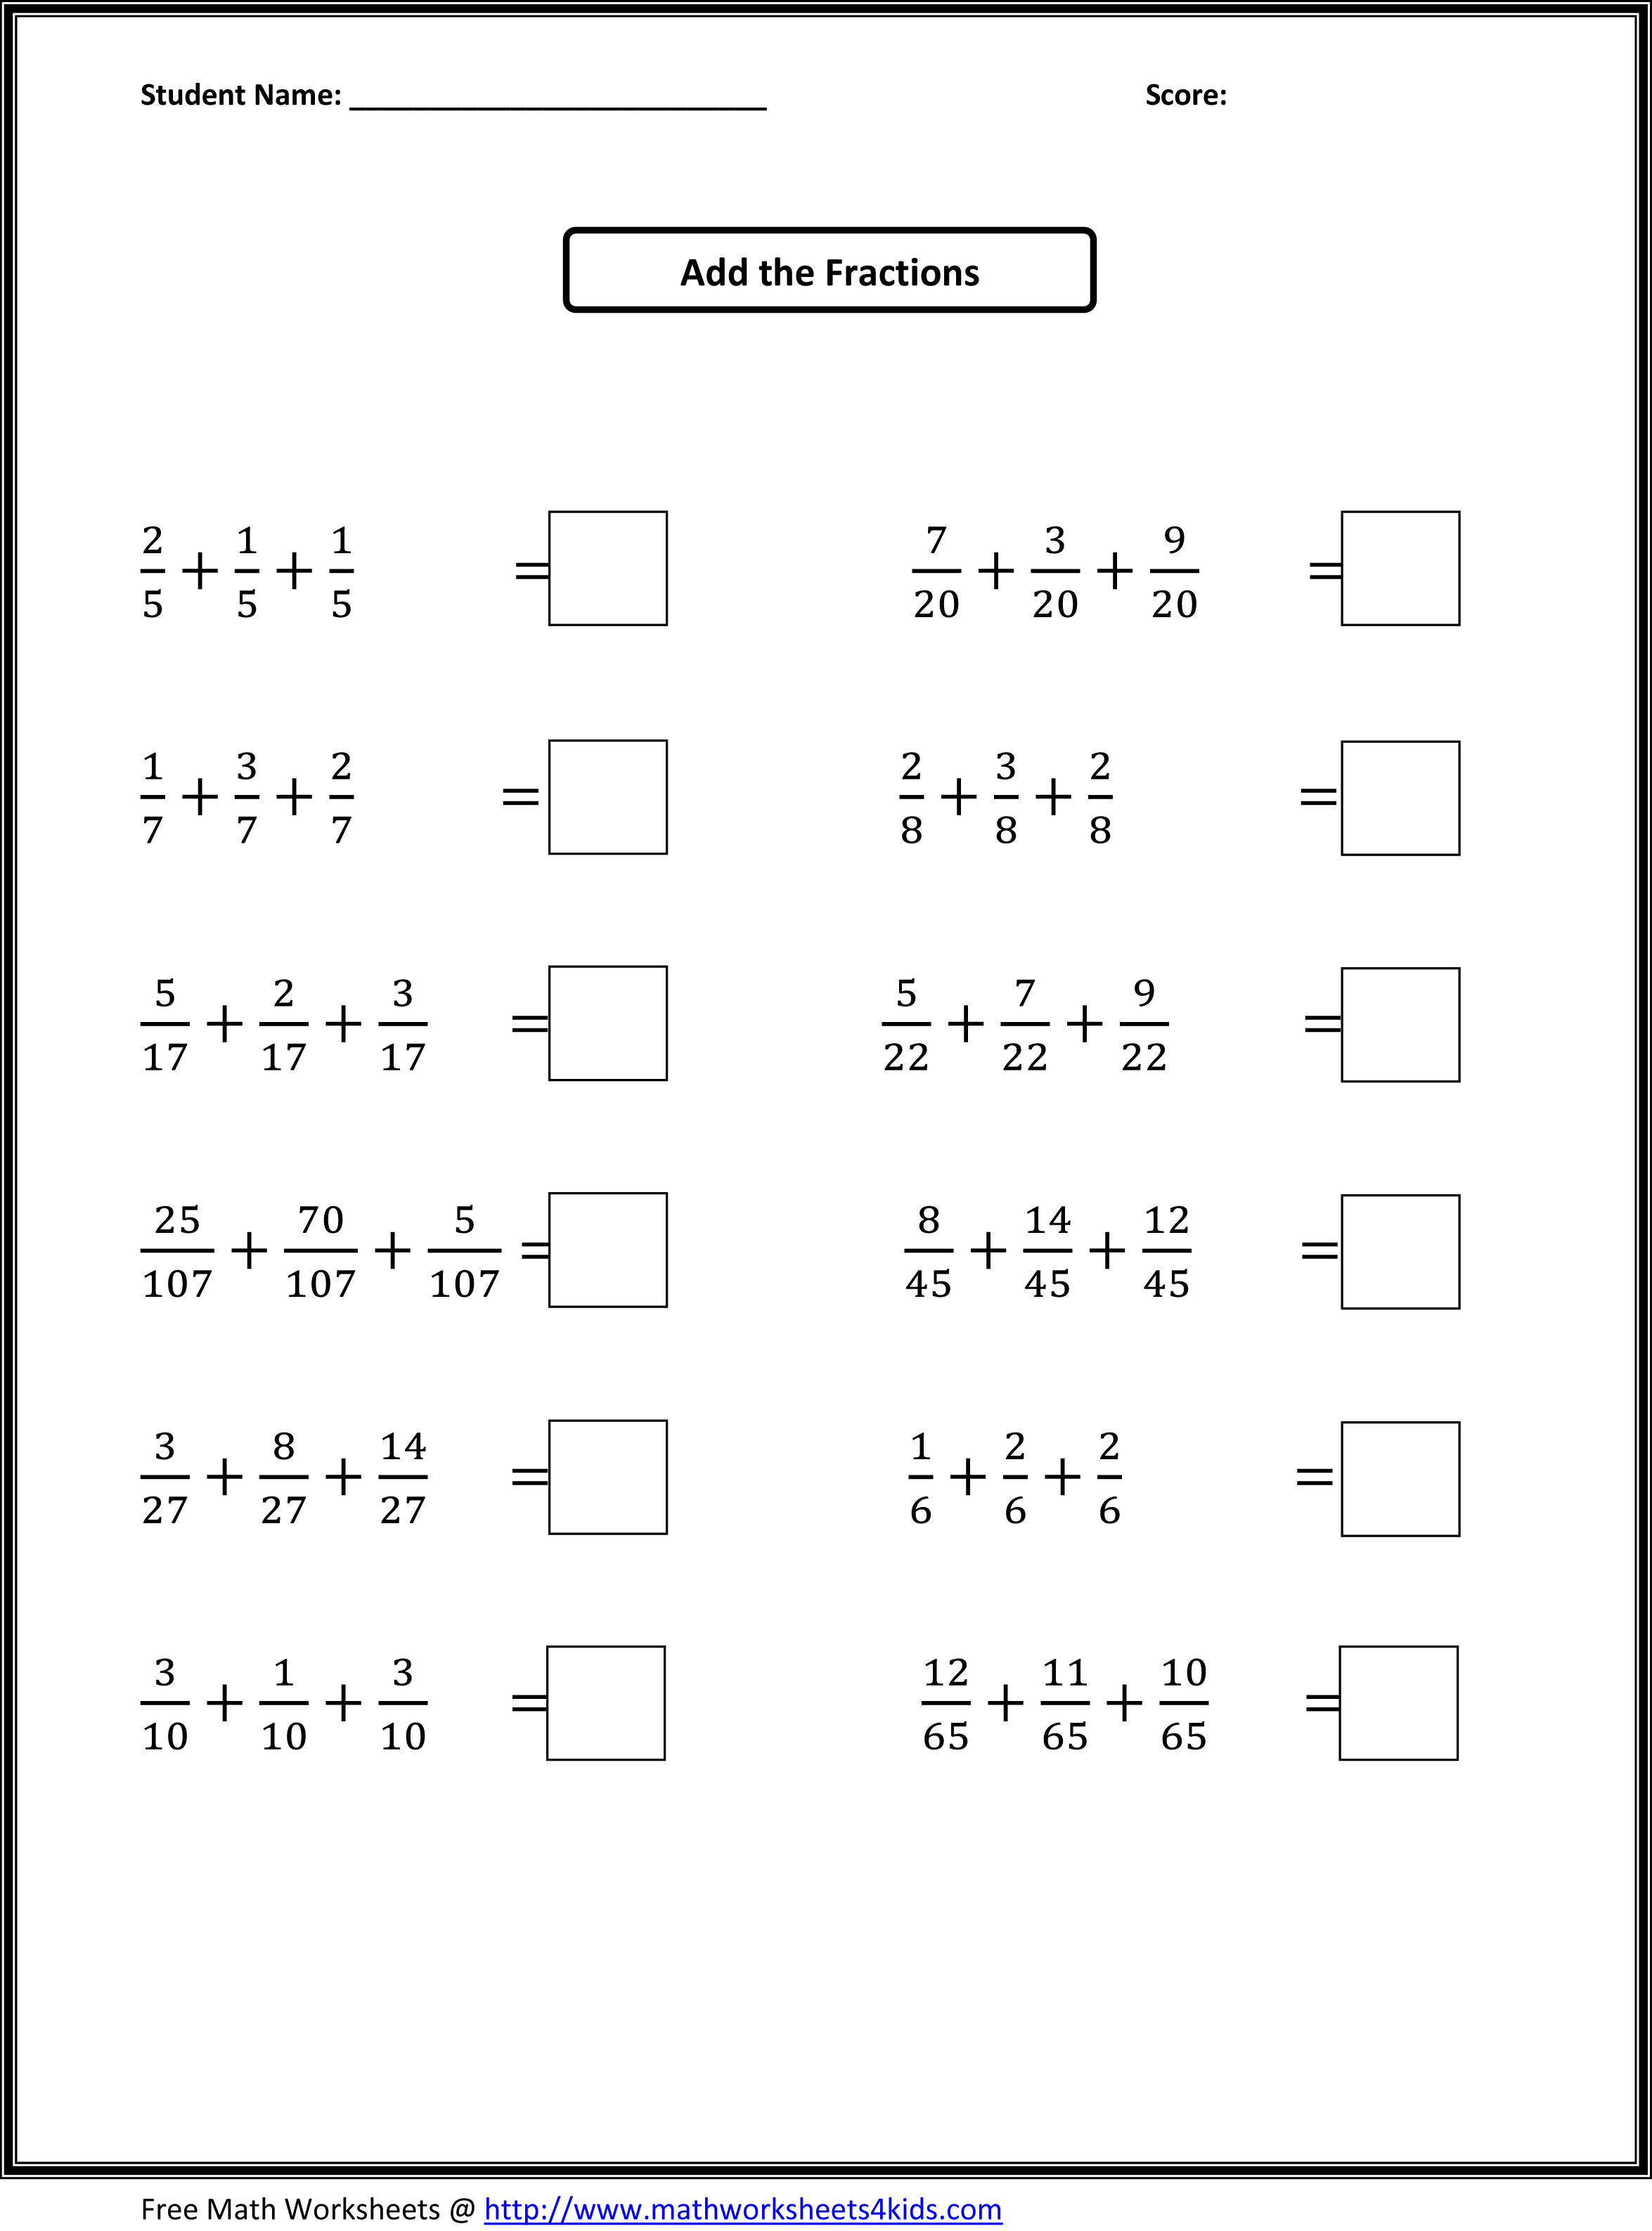 math worksheet : 4th grade math worksheets multiplying fractions  kids activities : Fractions Grade 3 Worksheets